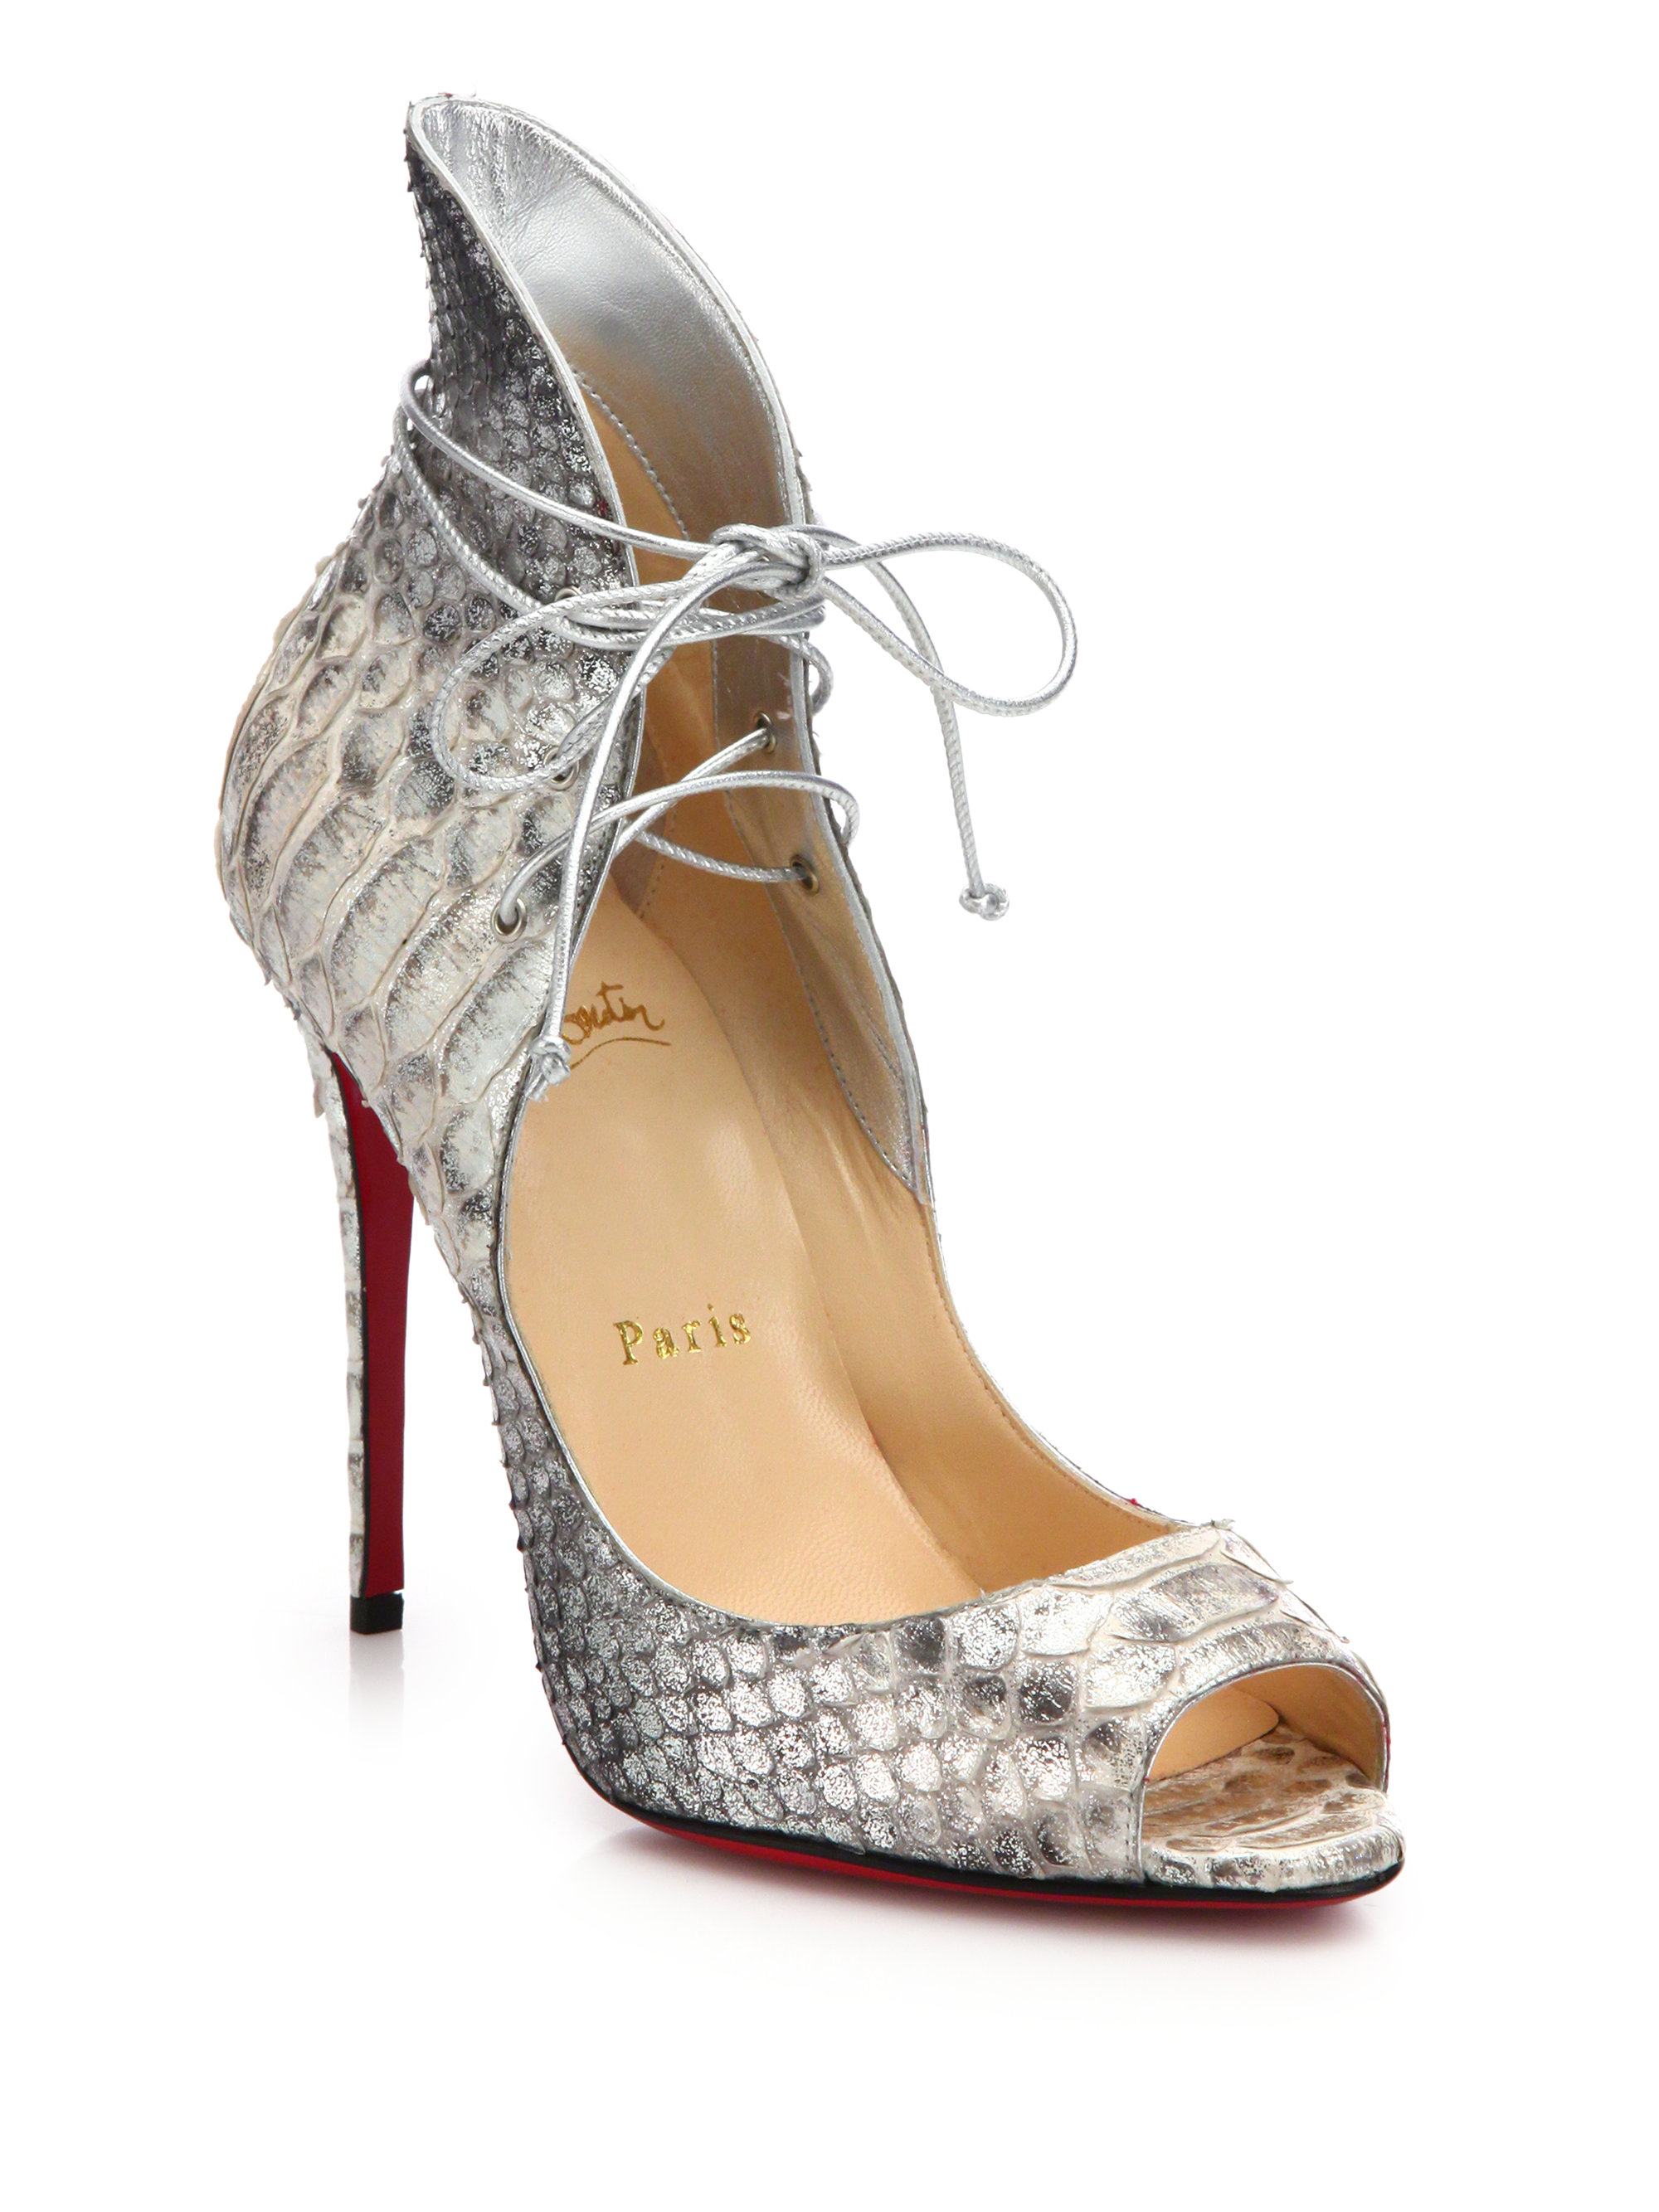 louboutin shoes replica - Christian louboutin Megavamp Python-Embossed Leather Pumps in Gray ...